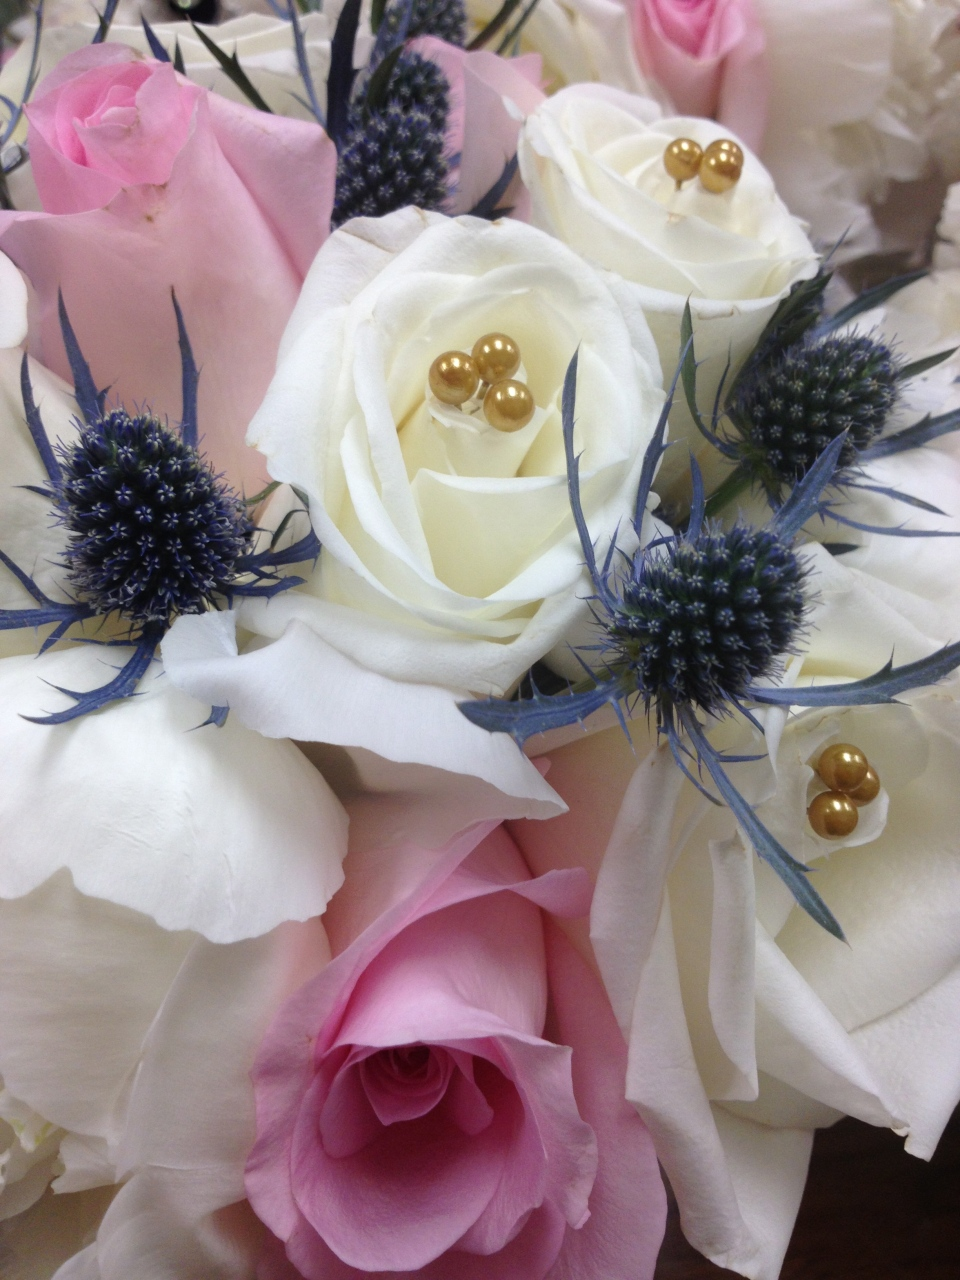 Blush and ivory roses with blue thistle